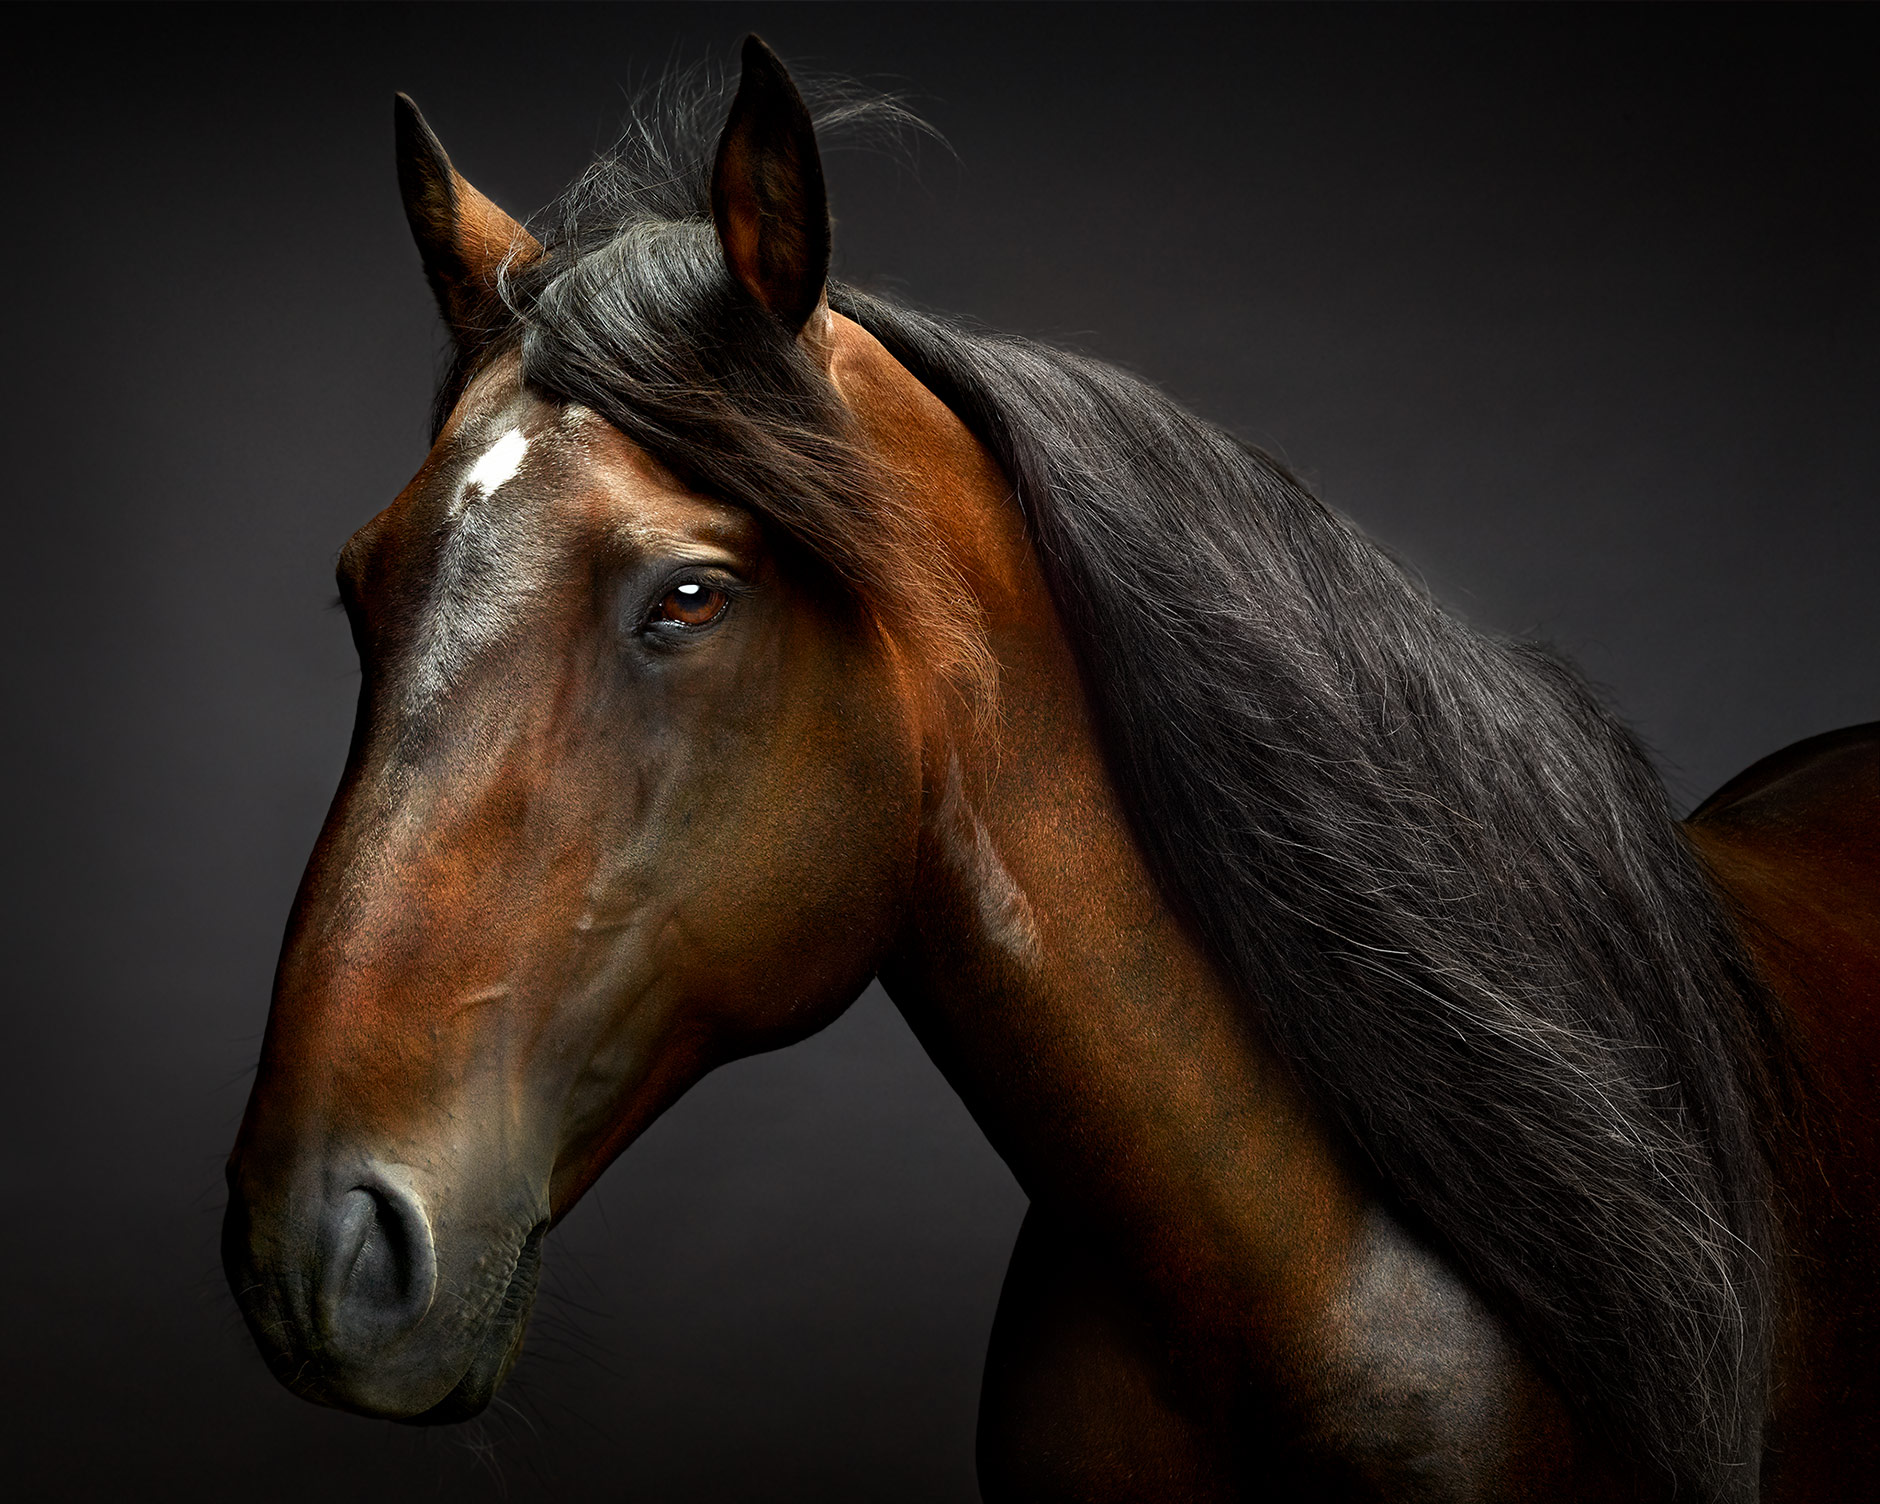 Touche_Lusitano.Horse.Art.Photo.Equine.Peter.Samuels